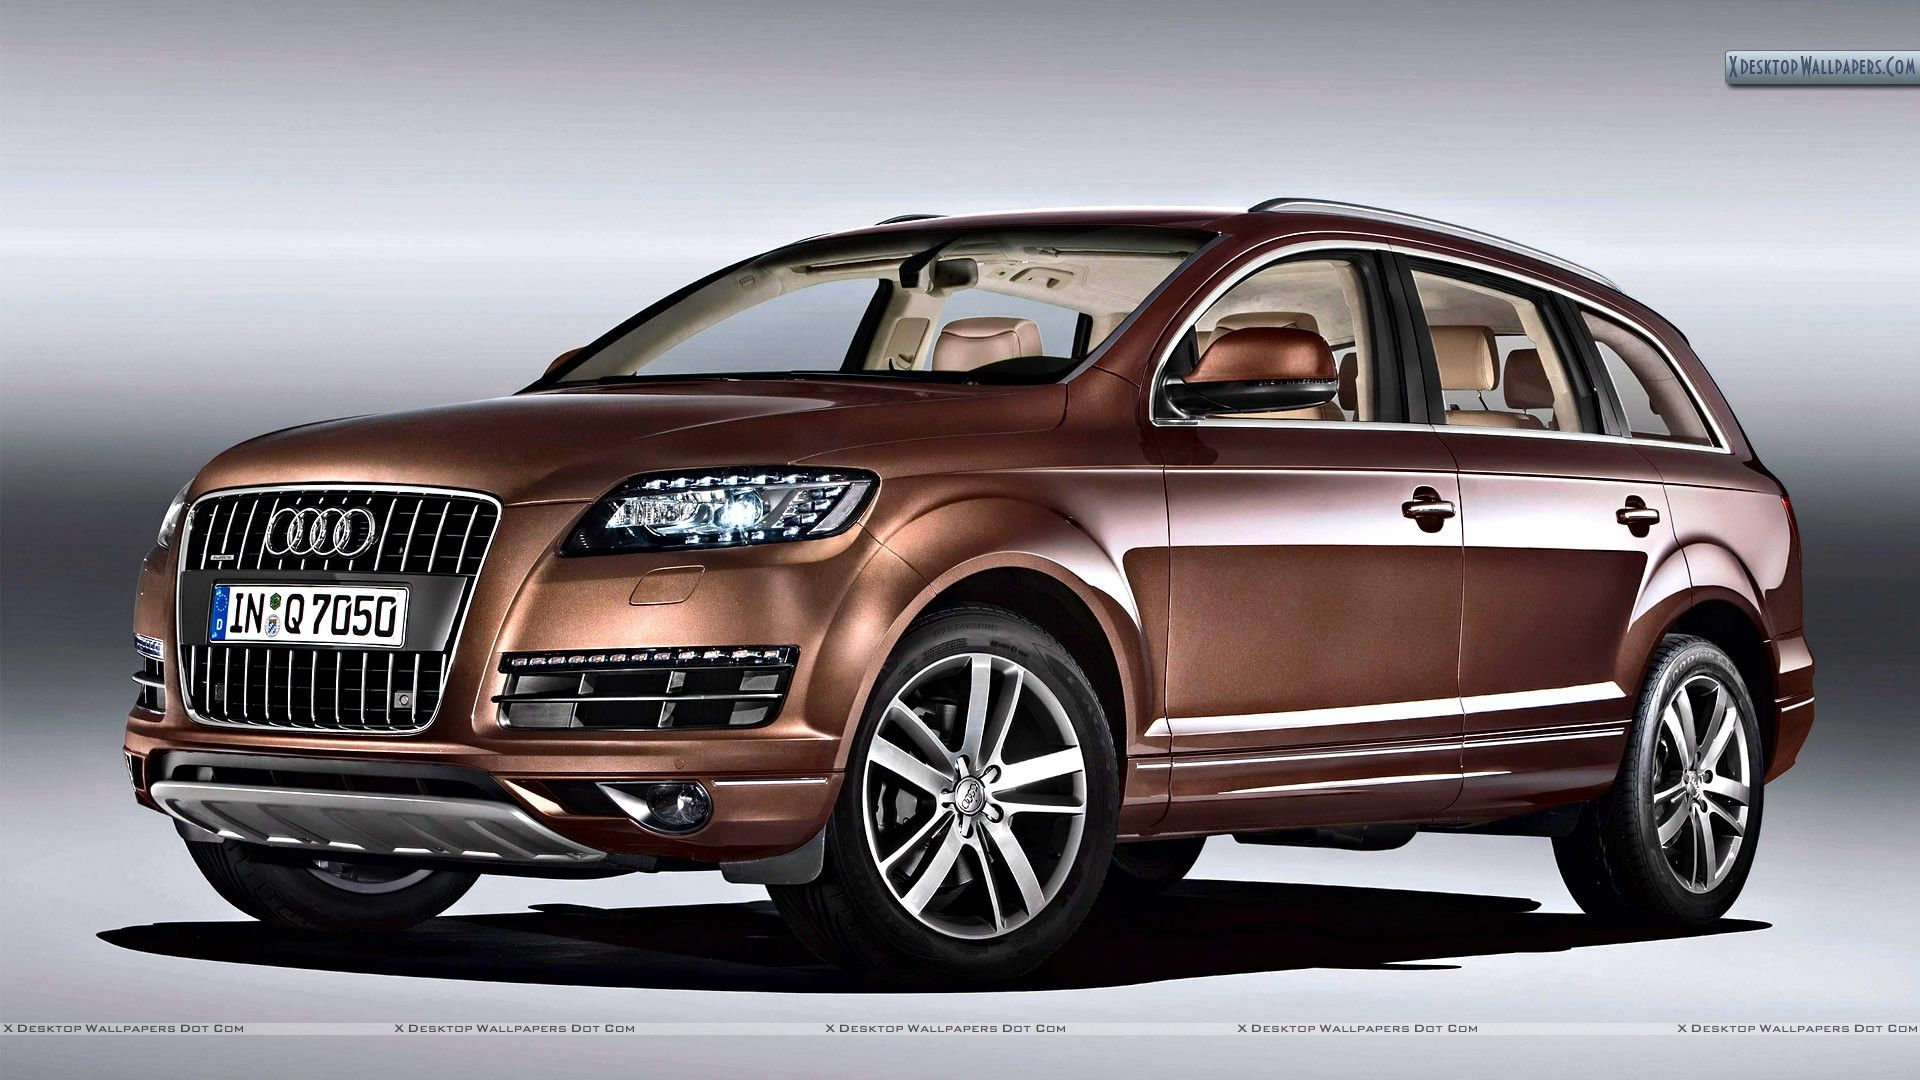 2010 Audi Q7 30 TDI Brown Color Front Side Pose Wallpapers